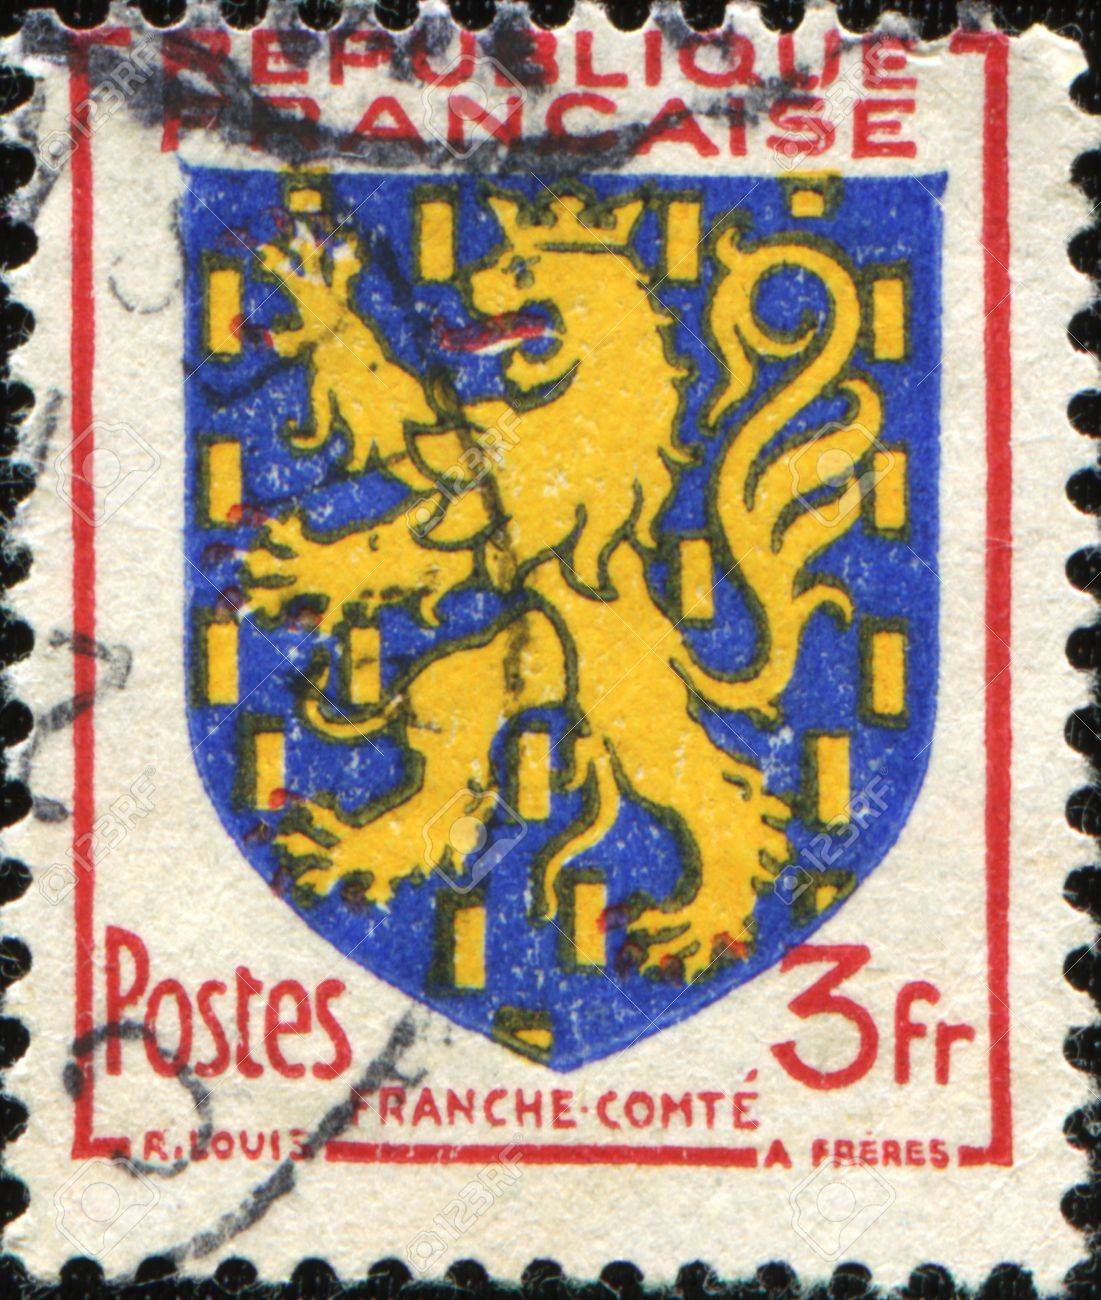 FRANCE - CIRCA 1951: A stamp printed in France shows coat of arms of Franch Comte, circa 1951 Stock Photo - 8777068